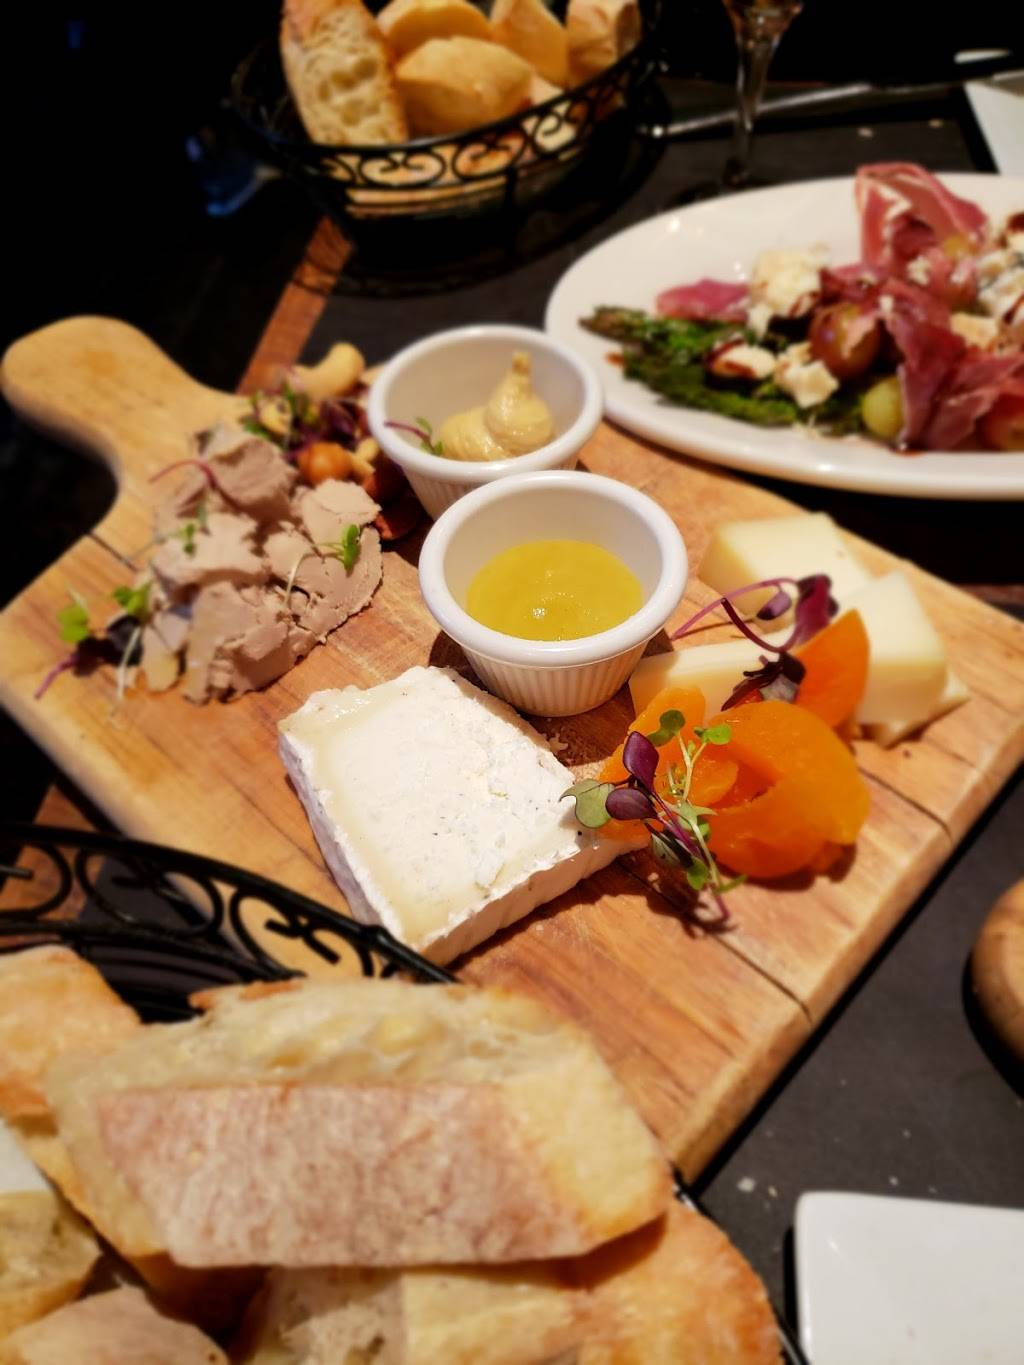 Le Pif NYC   restaurant   2058 Broadway, New York, NY 10023, USA   2127992253 OR +1 212-799-2253